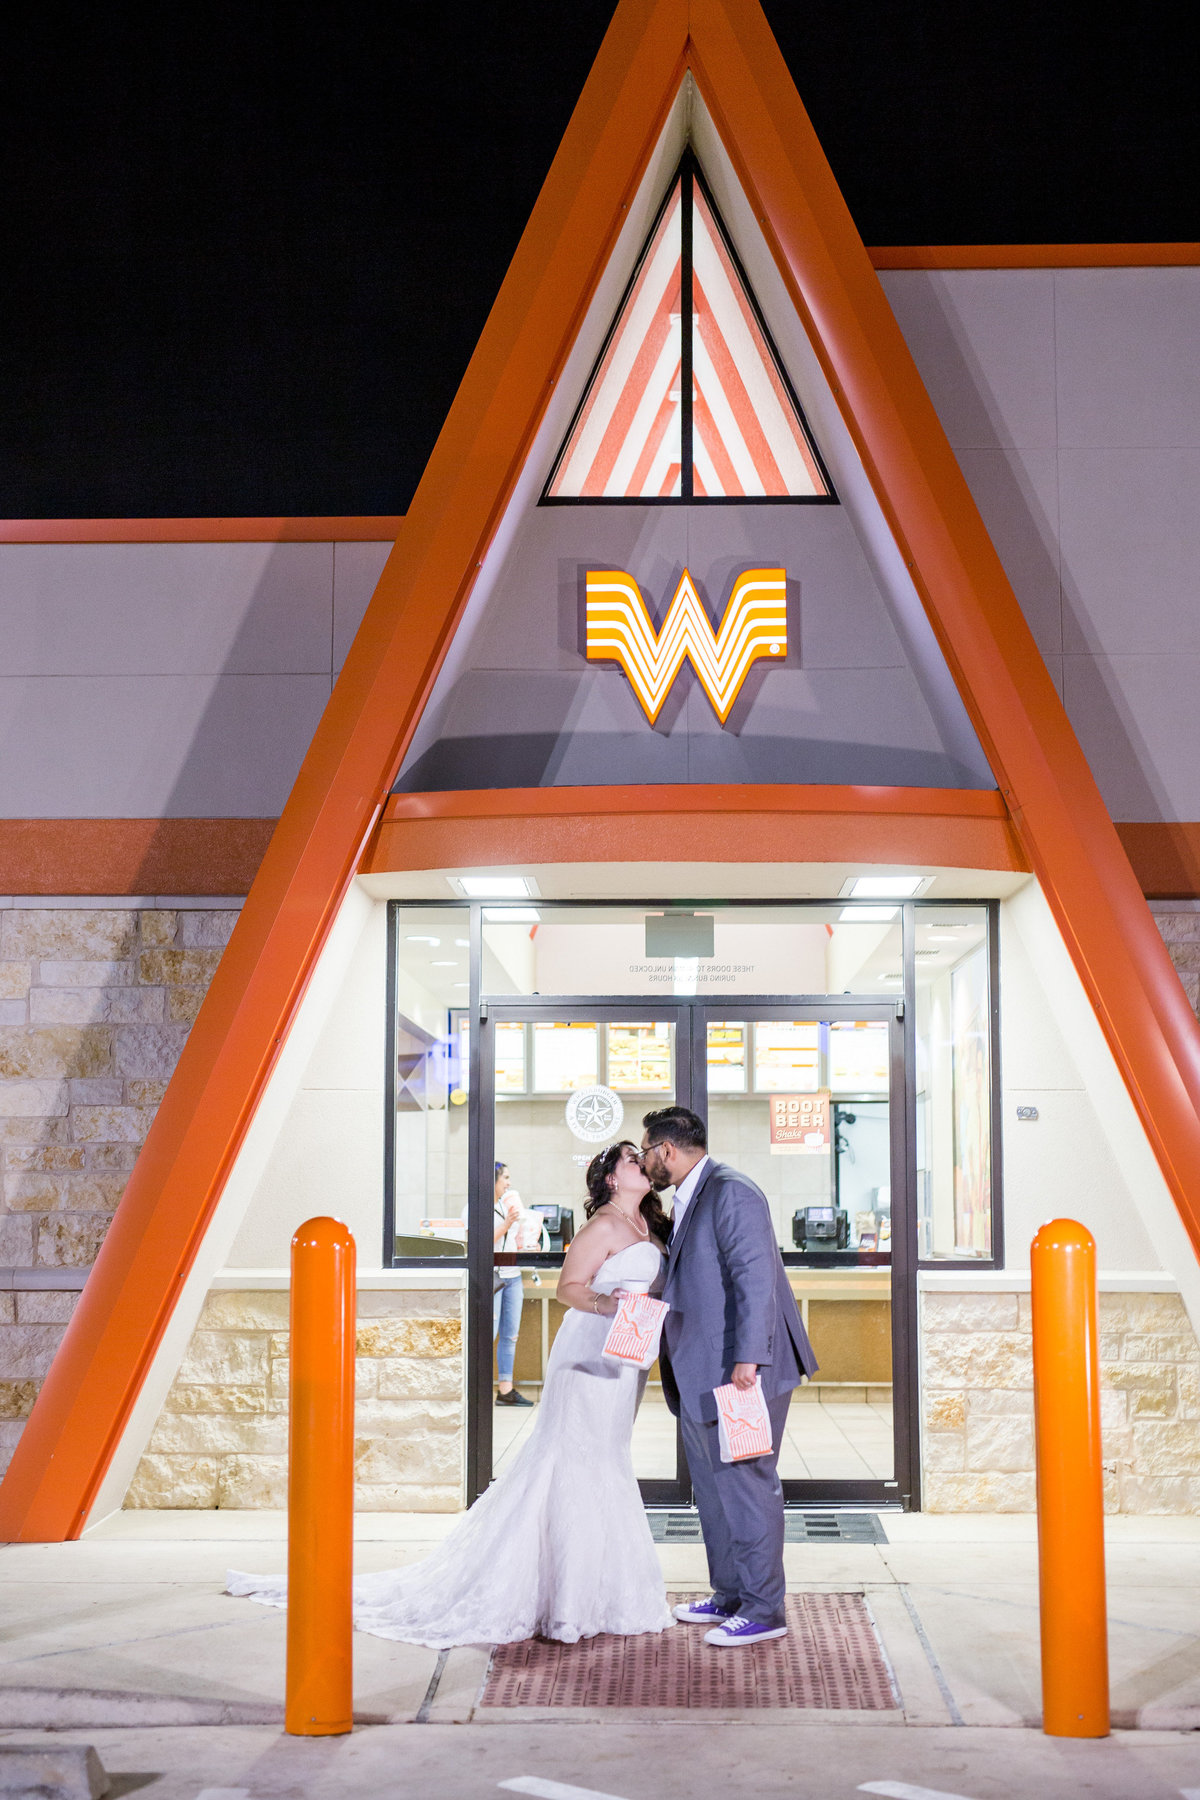 bride and groom get food at Whataburger after wedding reception